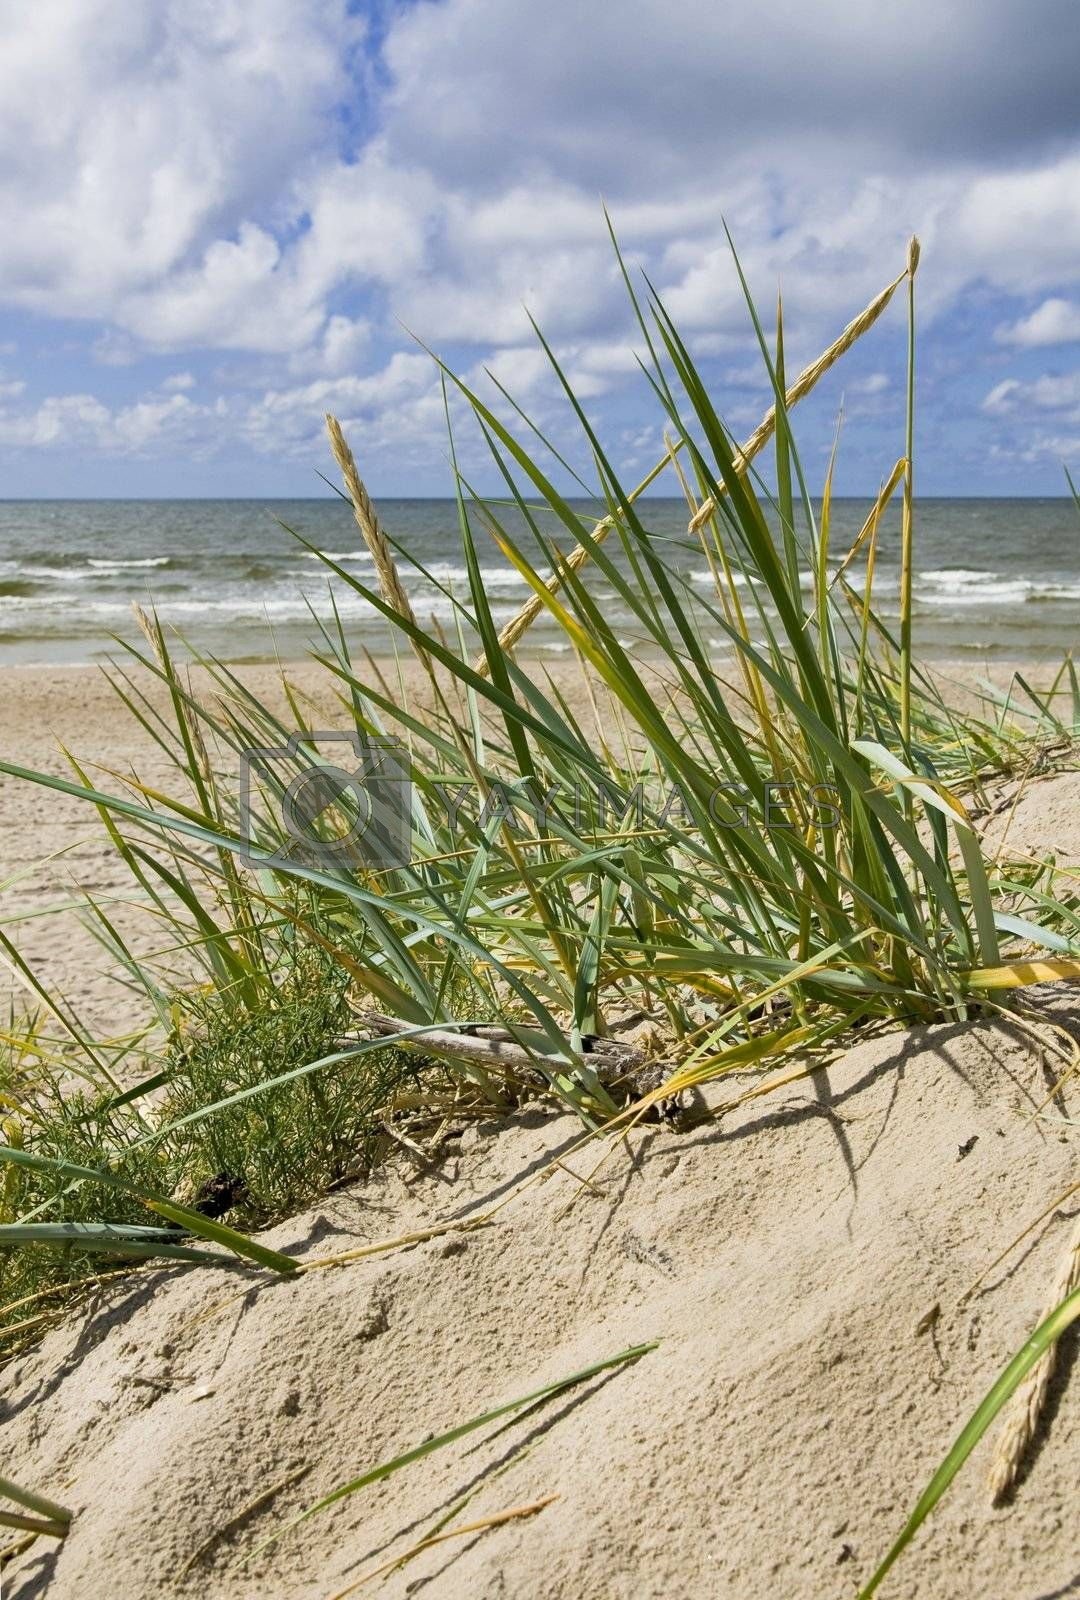 Royalty free image of Grass on dune by Nikonas